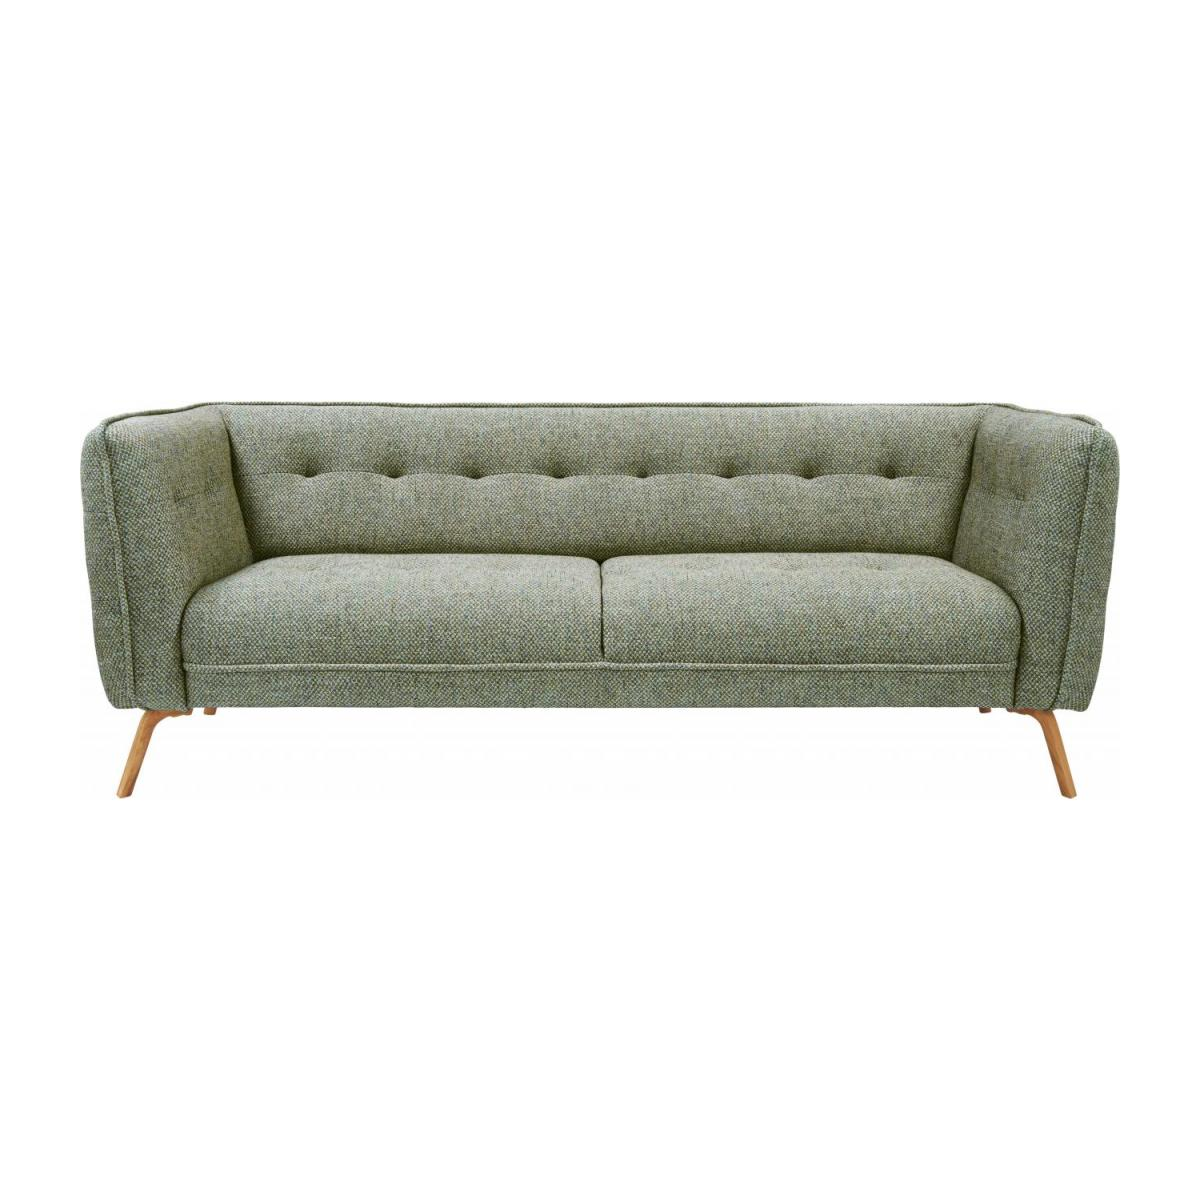 3 seater sofa in Bellagio fabric, organic green and oak legs n°2